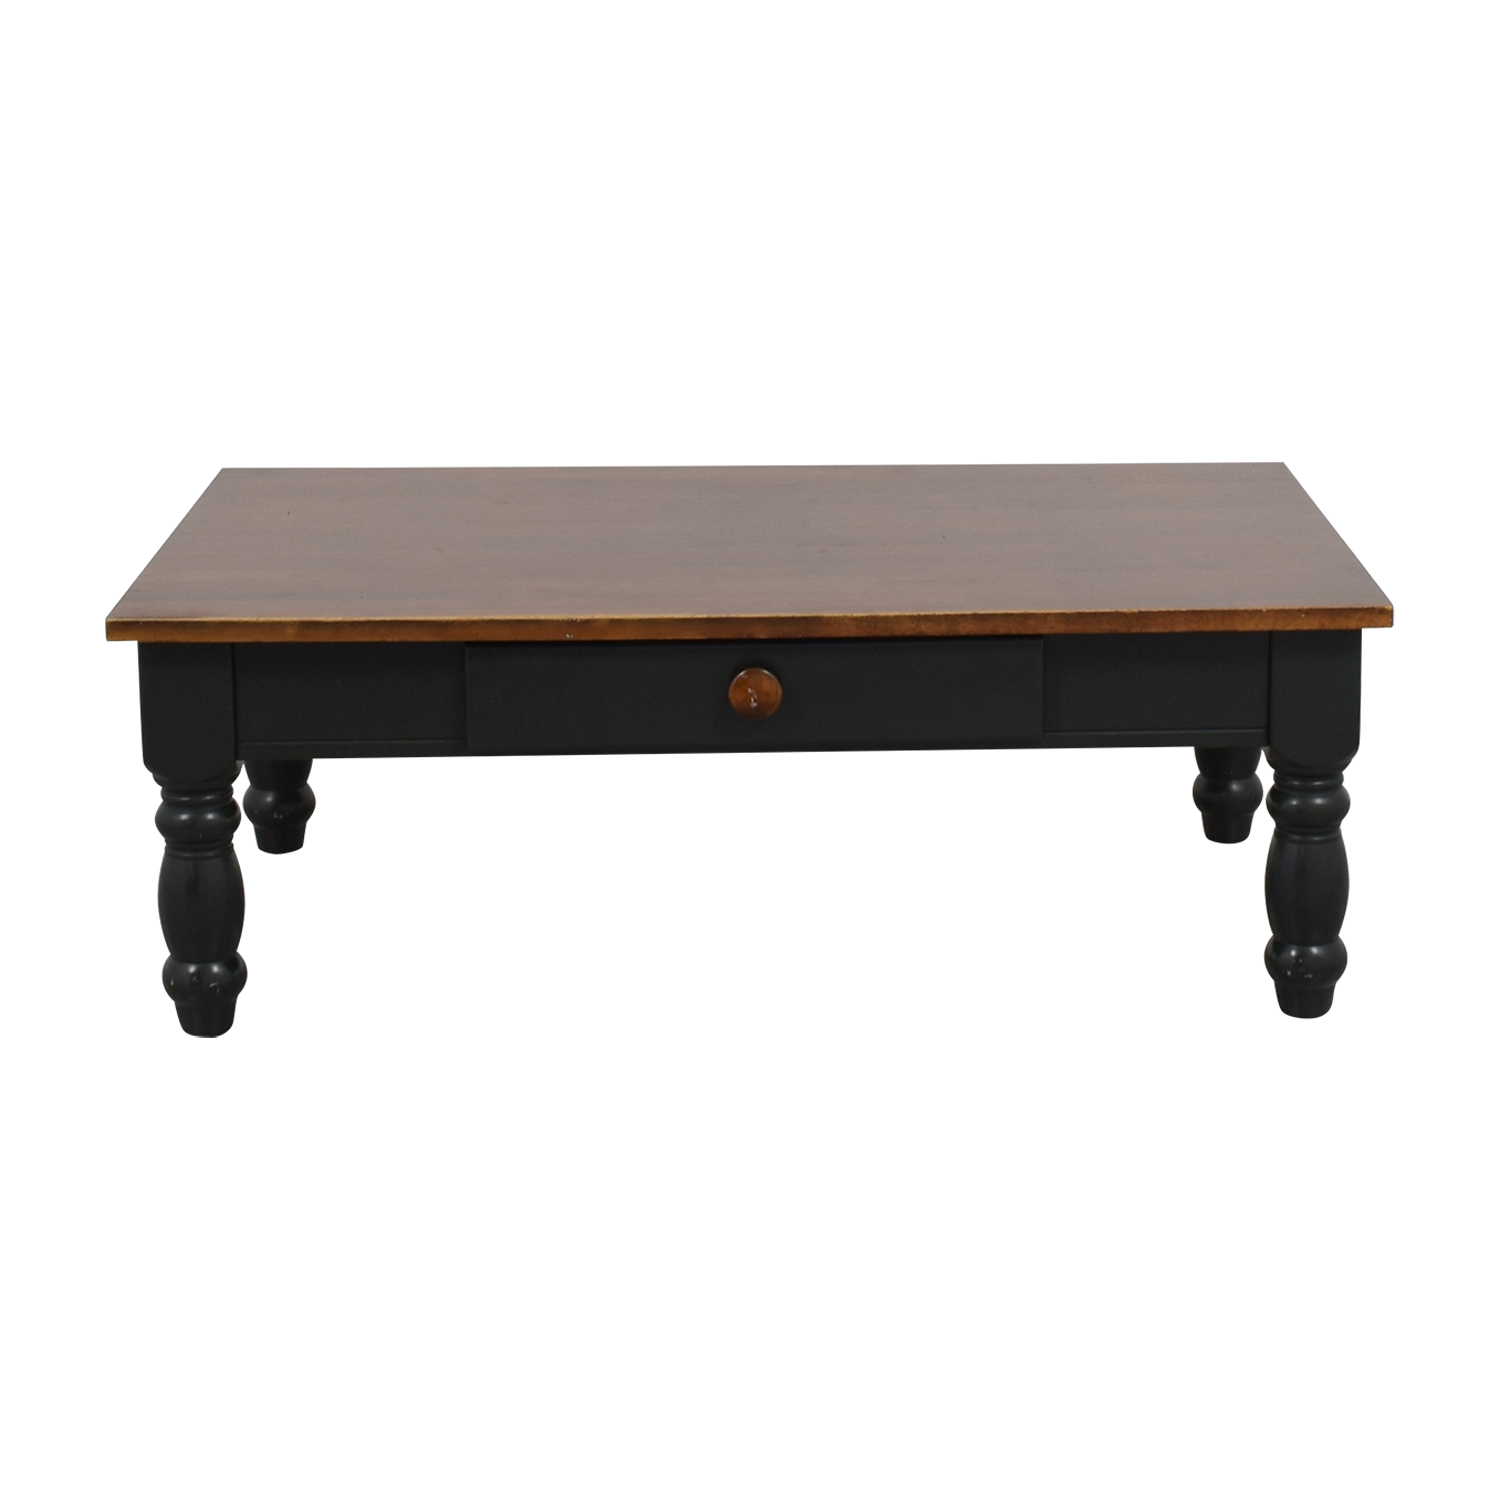 Jennifer Convertibles Jennifer Convertibles One-Drawer Coffee Table on sale